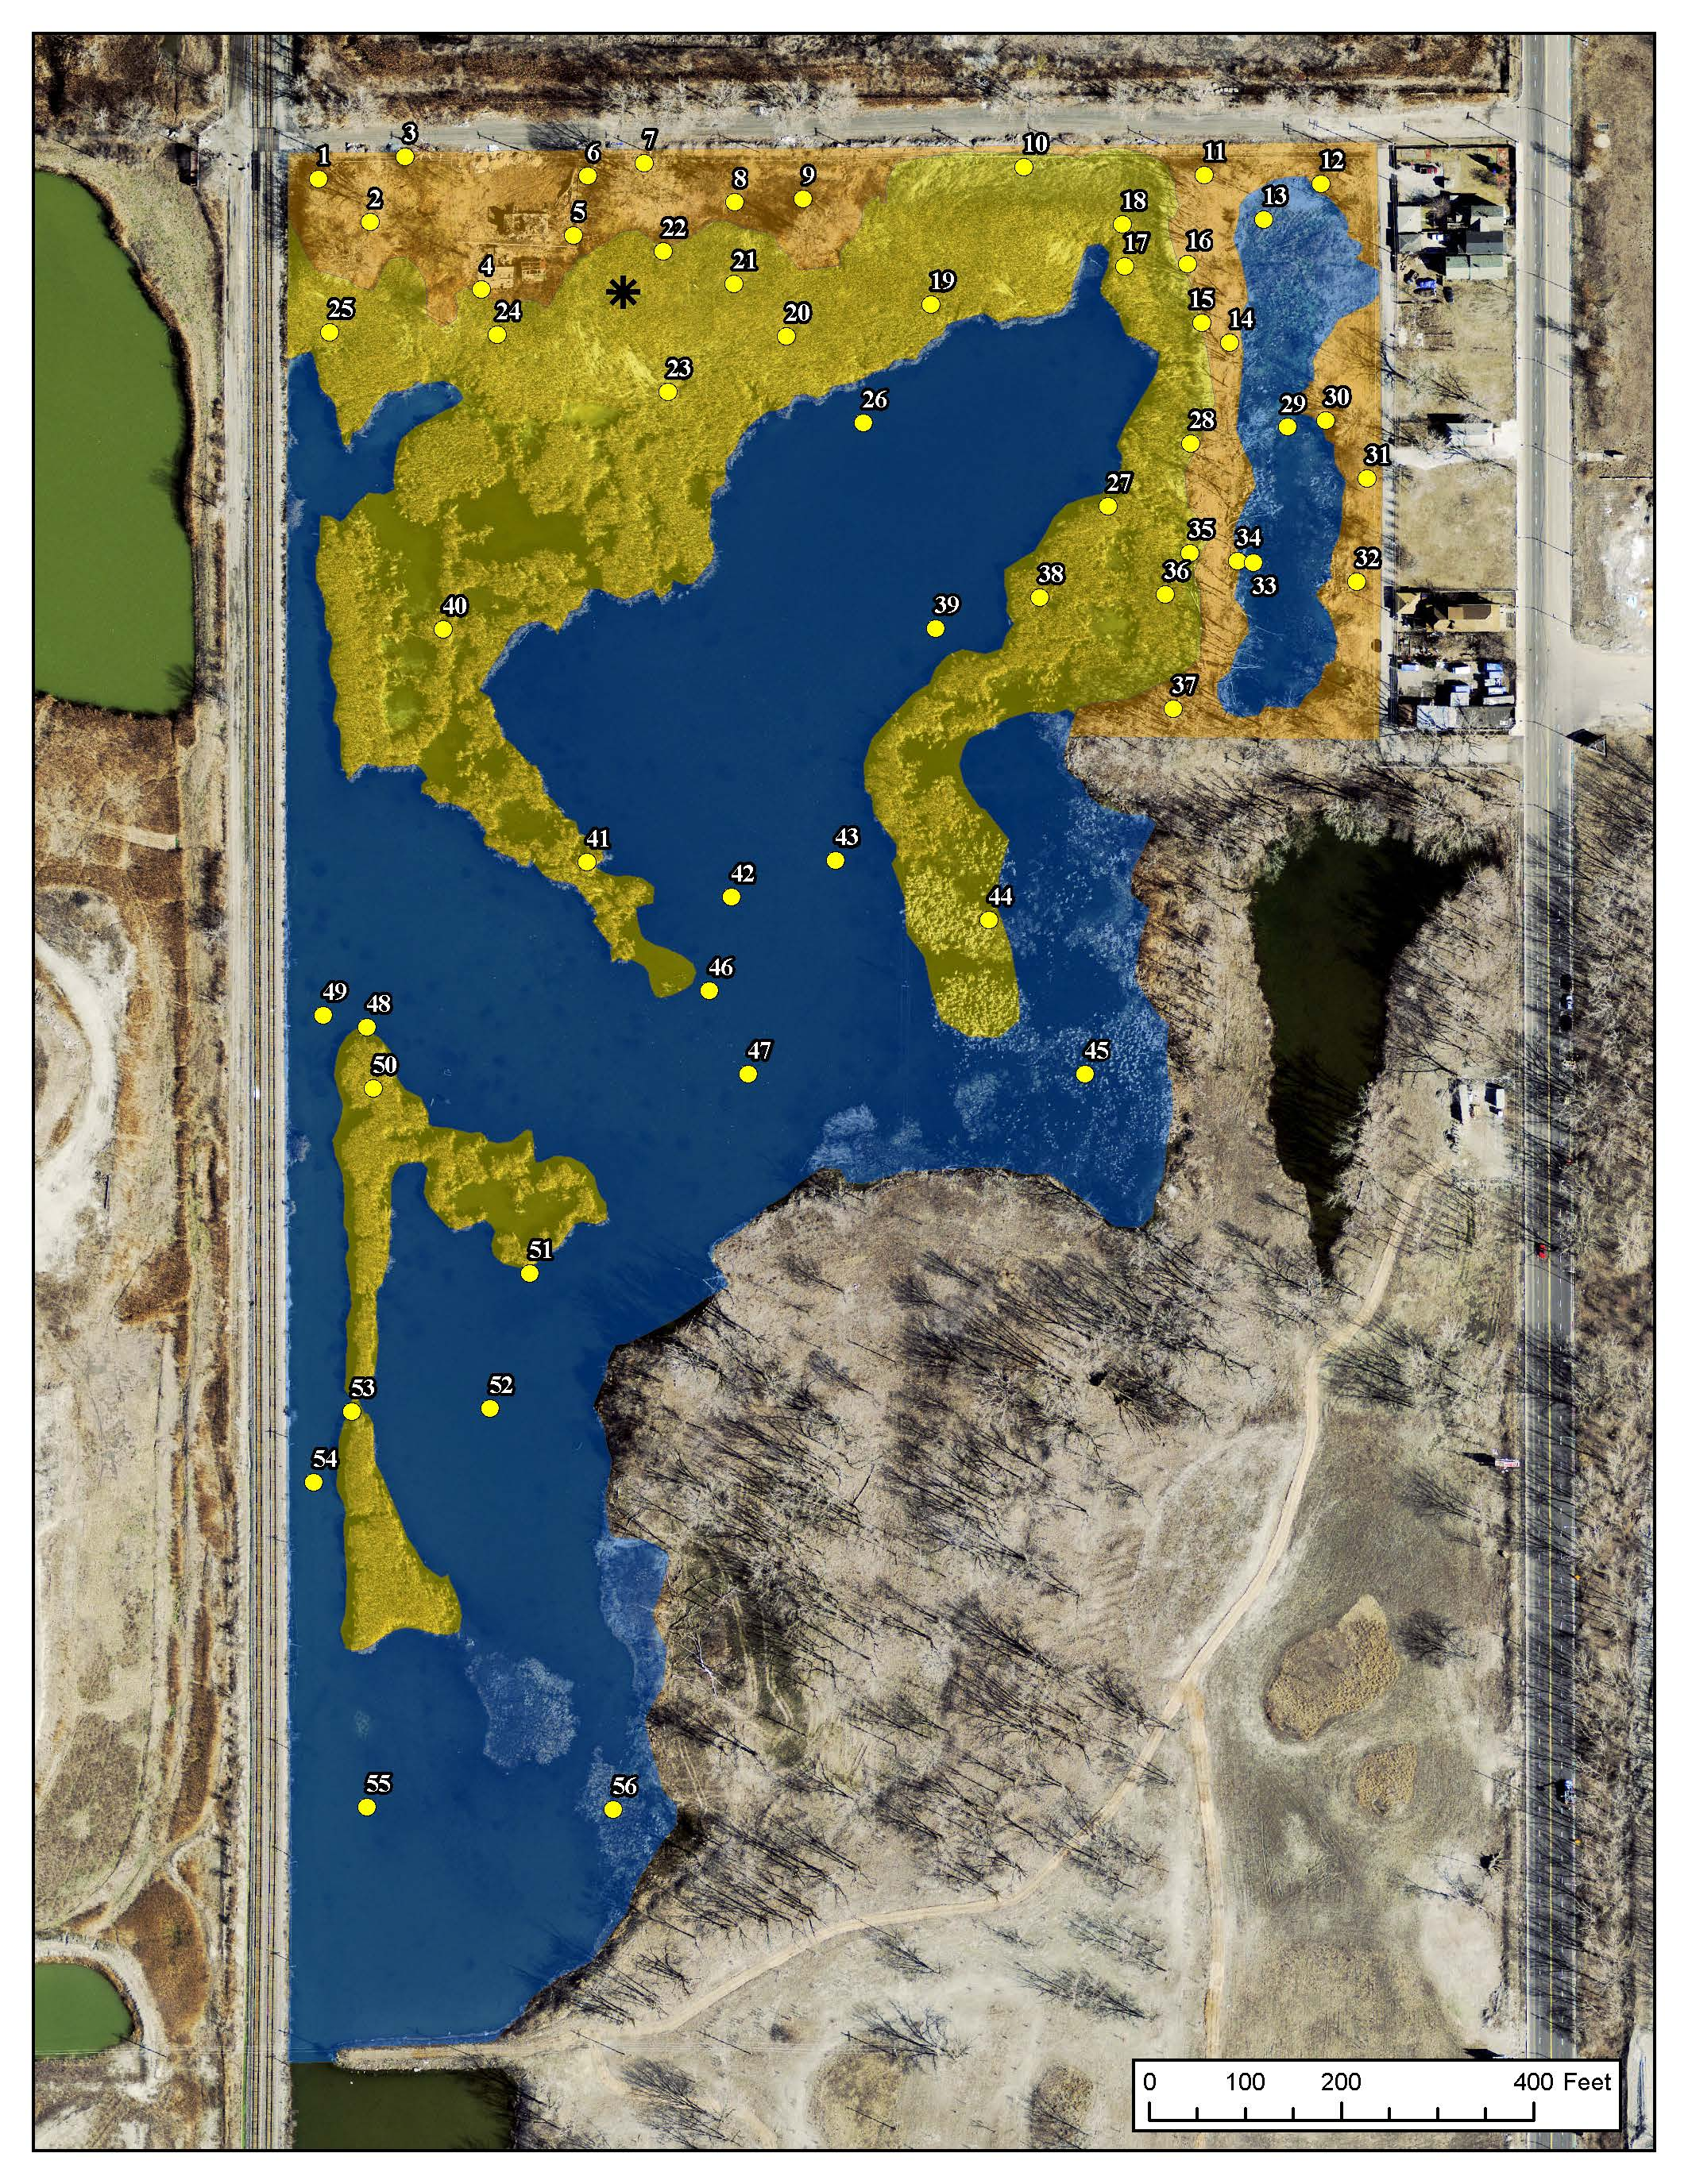 Map of survey points for monitoring Indian Ridge Marsh plant communities. Created by TWI GIS Analyst Jim Monchak and Senior Ecologist Gary Sullivan.